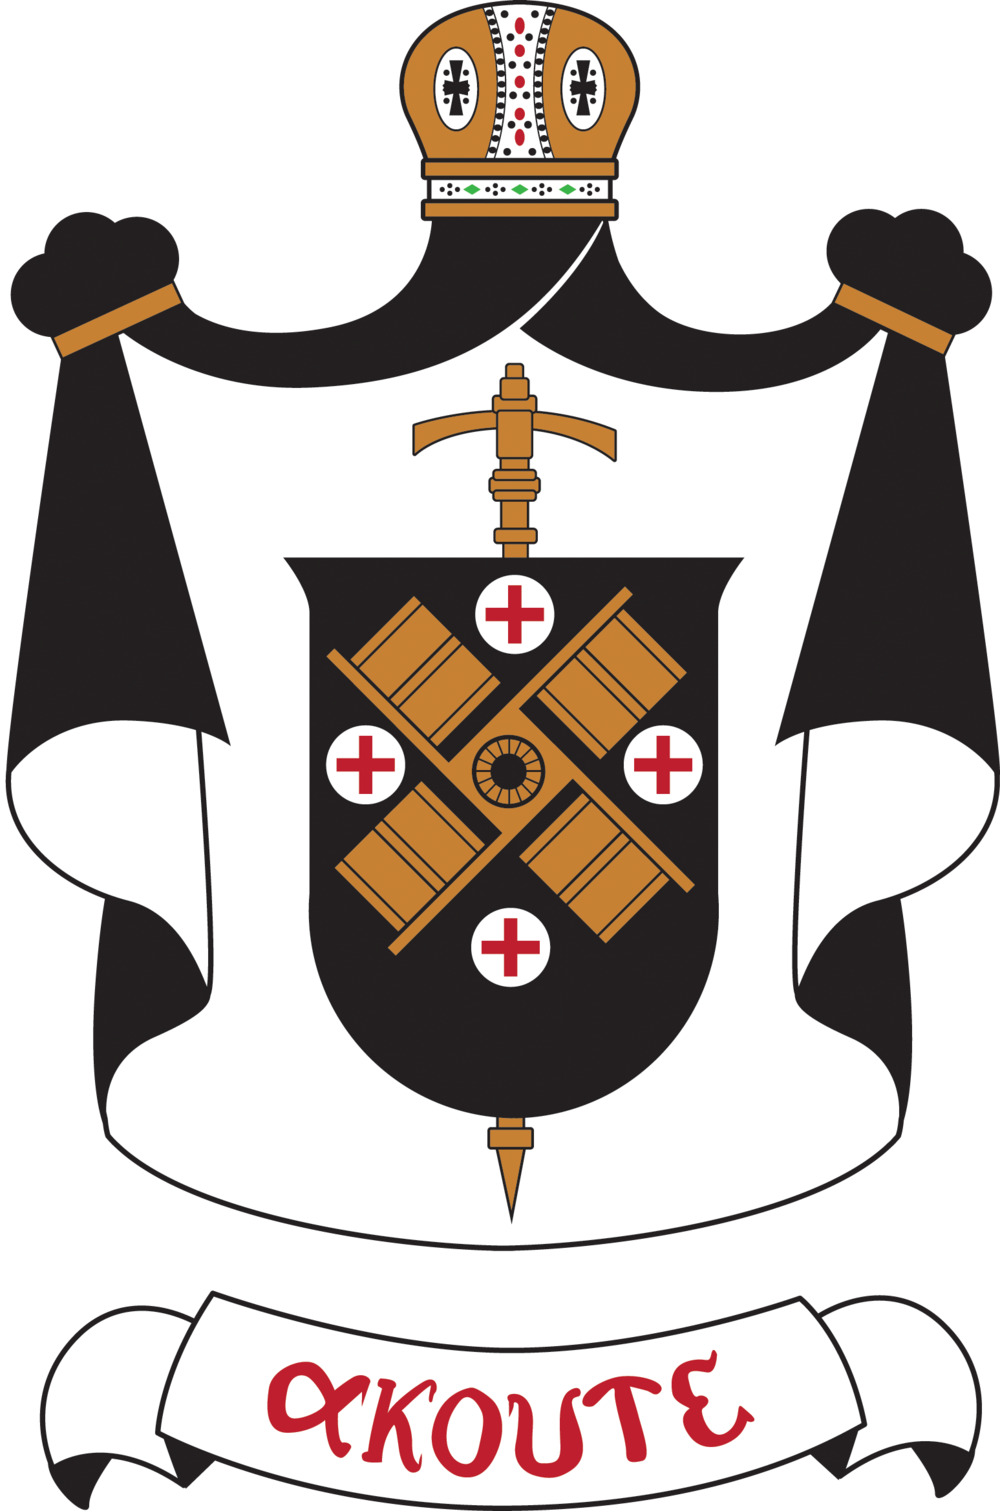 Rt. Rev. Paschal Morlino's Coat of Arms